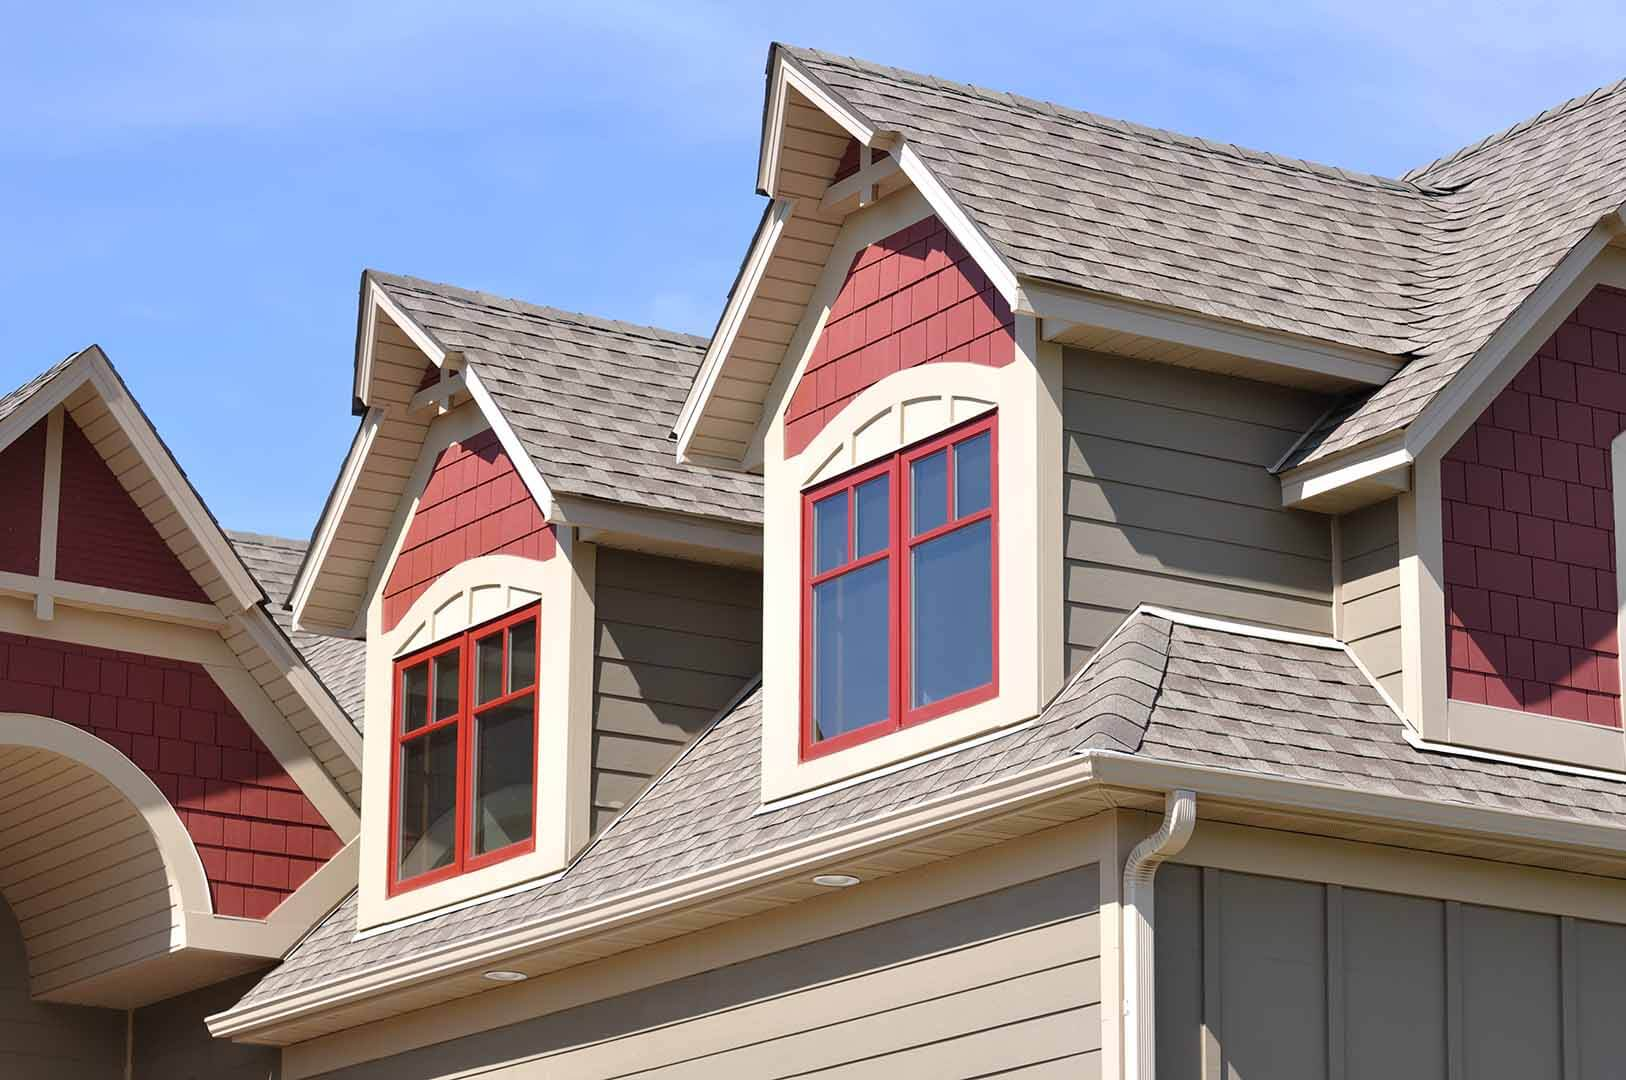 The Unifying Factor Among Wildwood Homes Is The Desire For Quality  Craftsmanship When It Comes To The Exterior Of Homes. St Louis Roofing  Companies ...